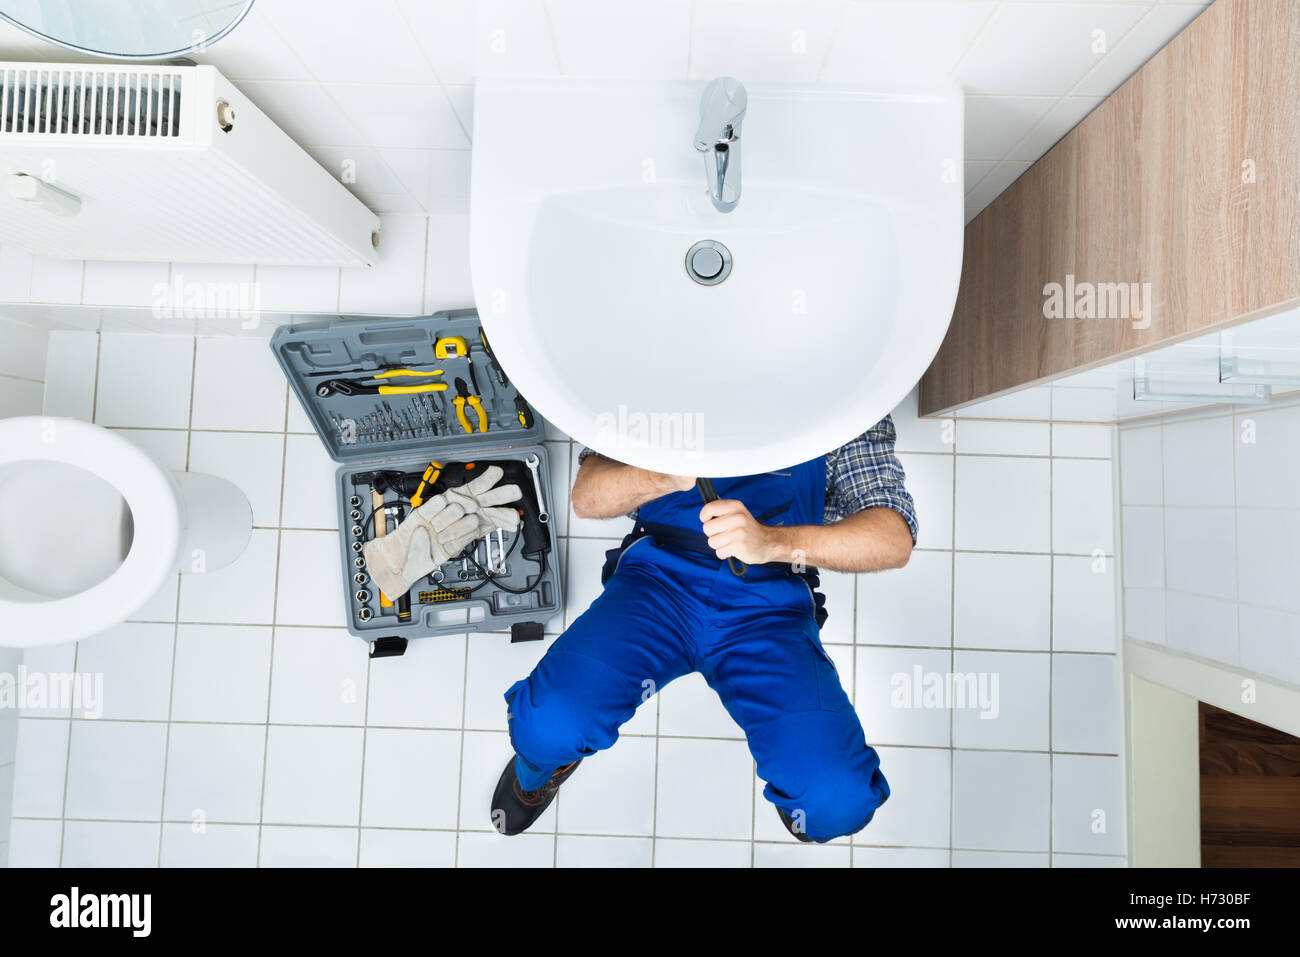 men - Stock Image